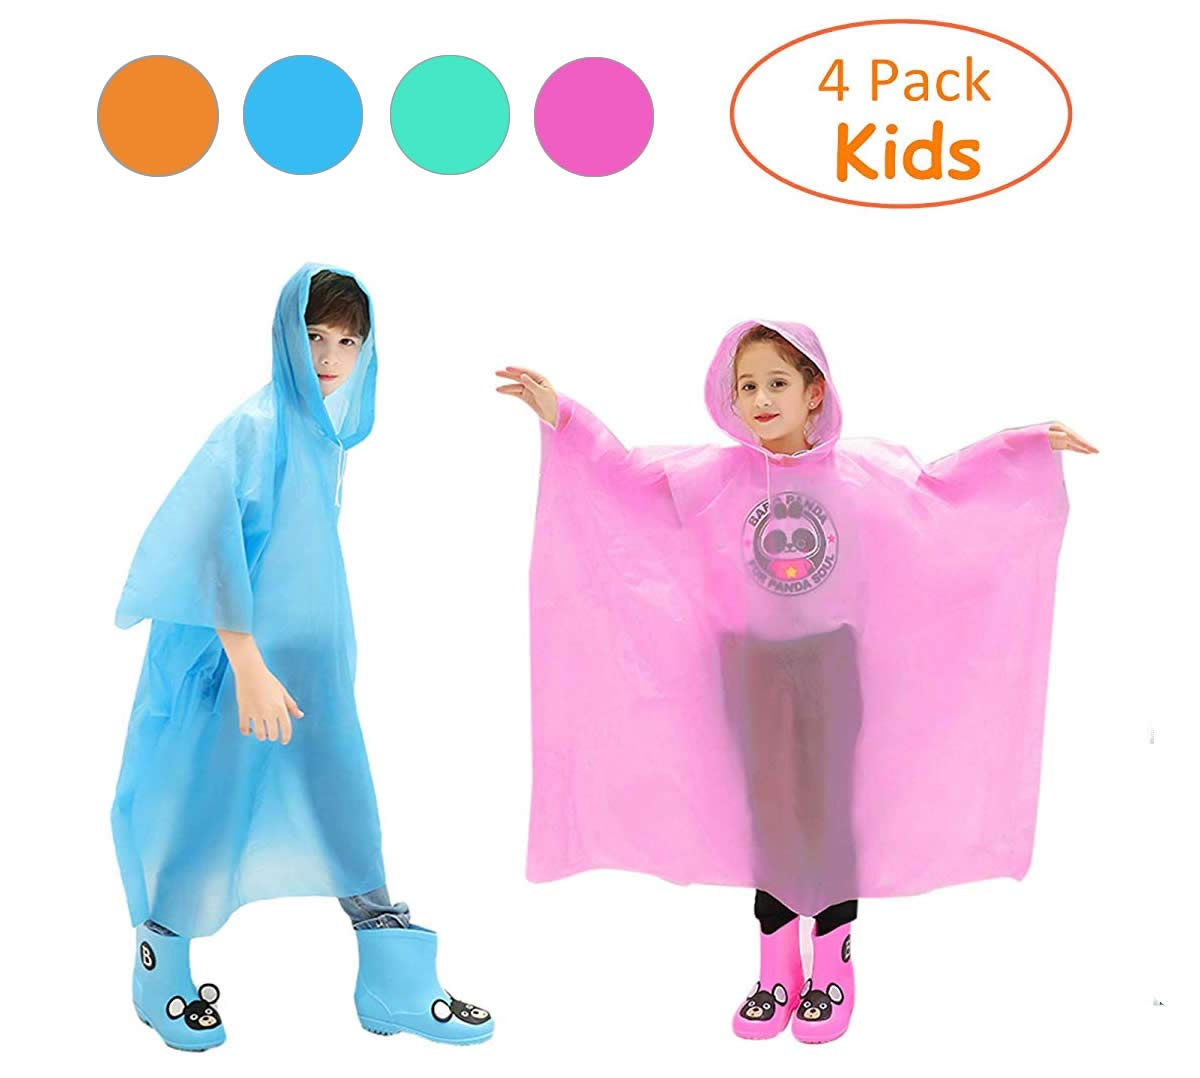 Emergency Rain Poncho for Kids, Disposable Drawstring Hood Poncho for Boys and Girls, Pack of 4 - Pink, Blue, Green, Orange